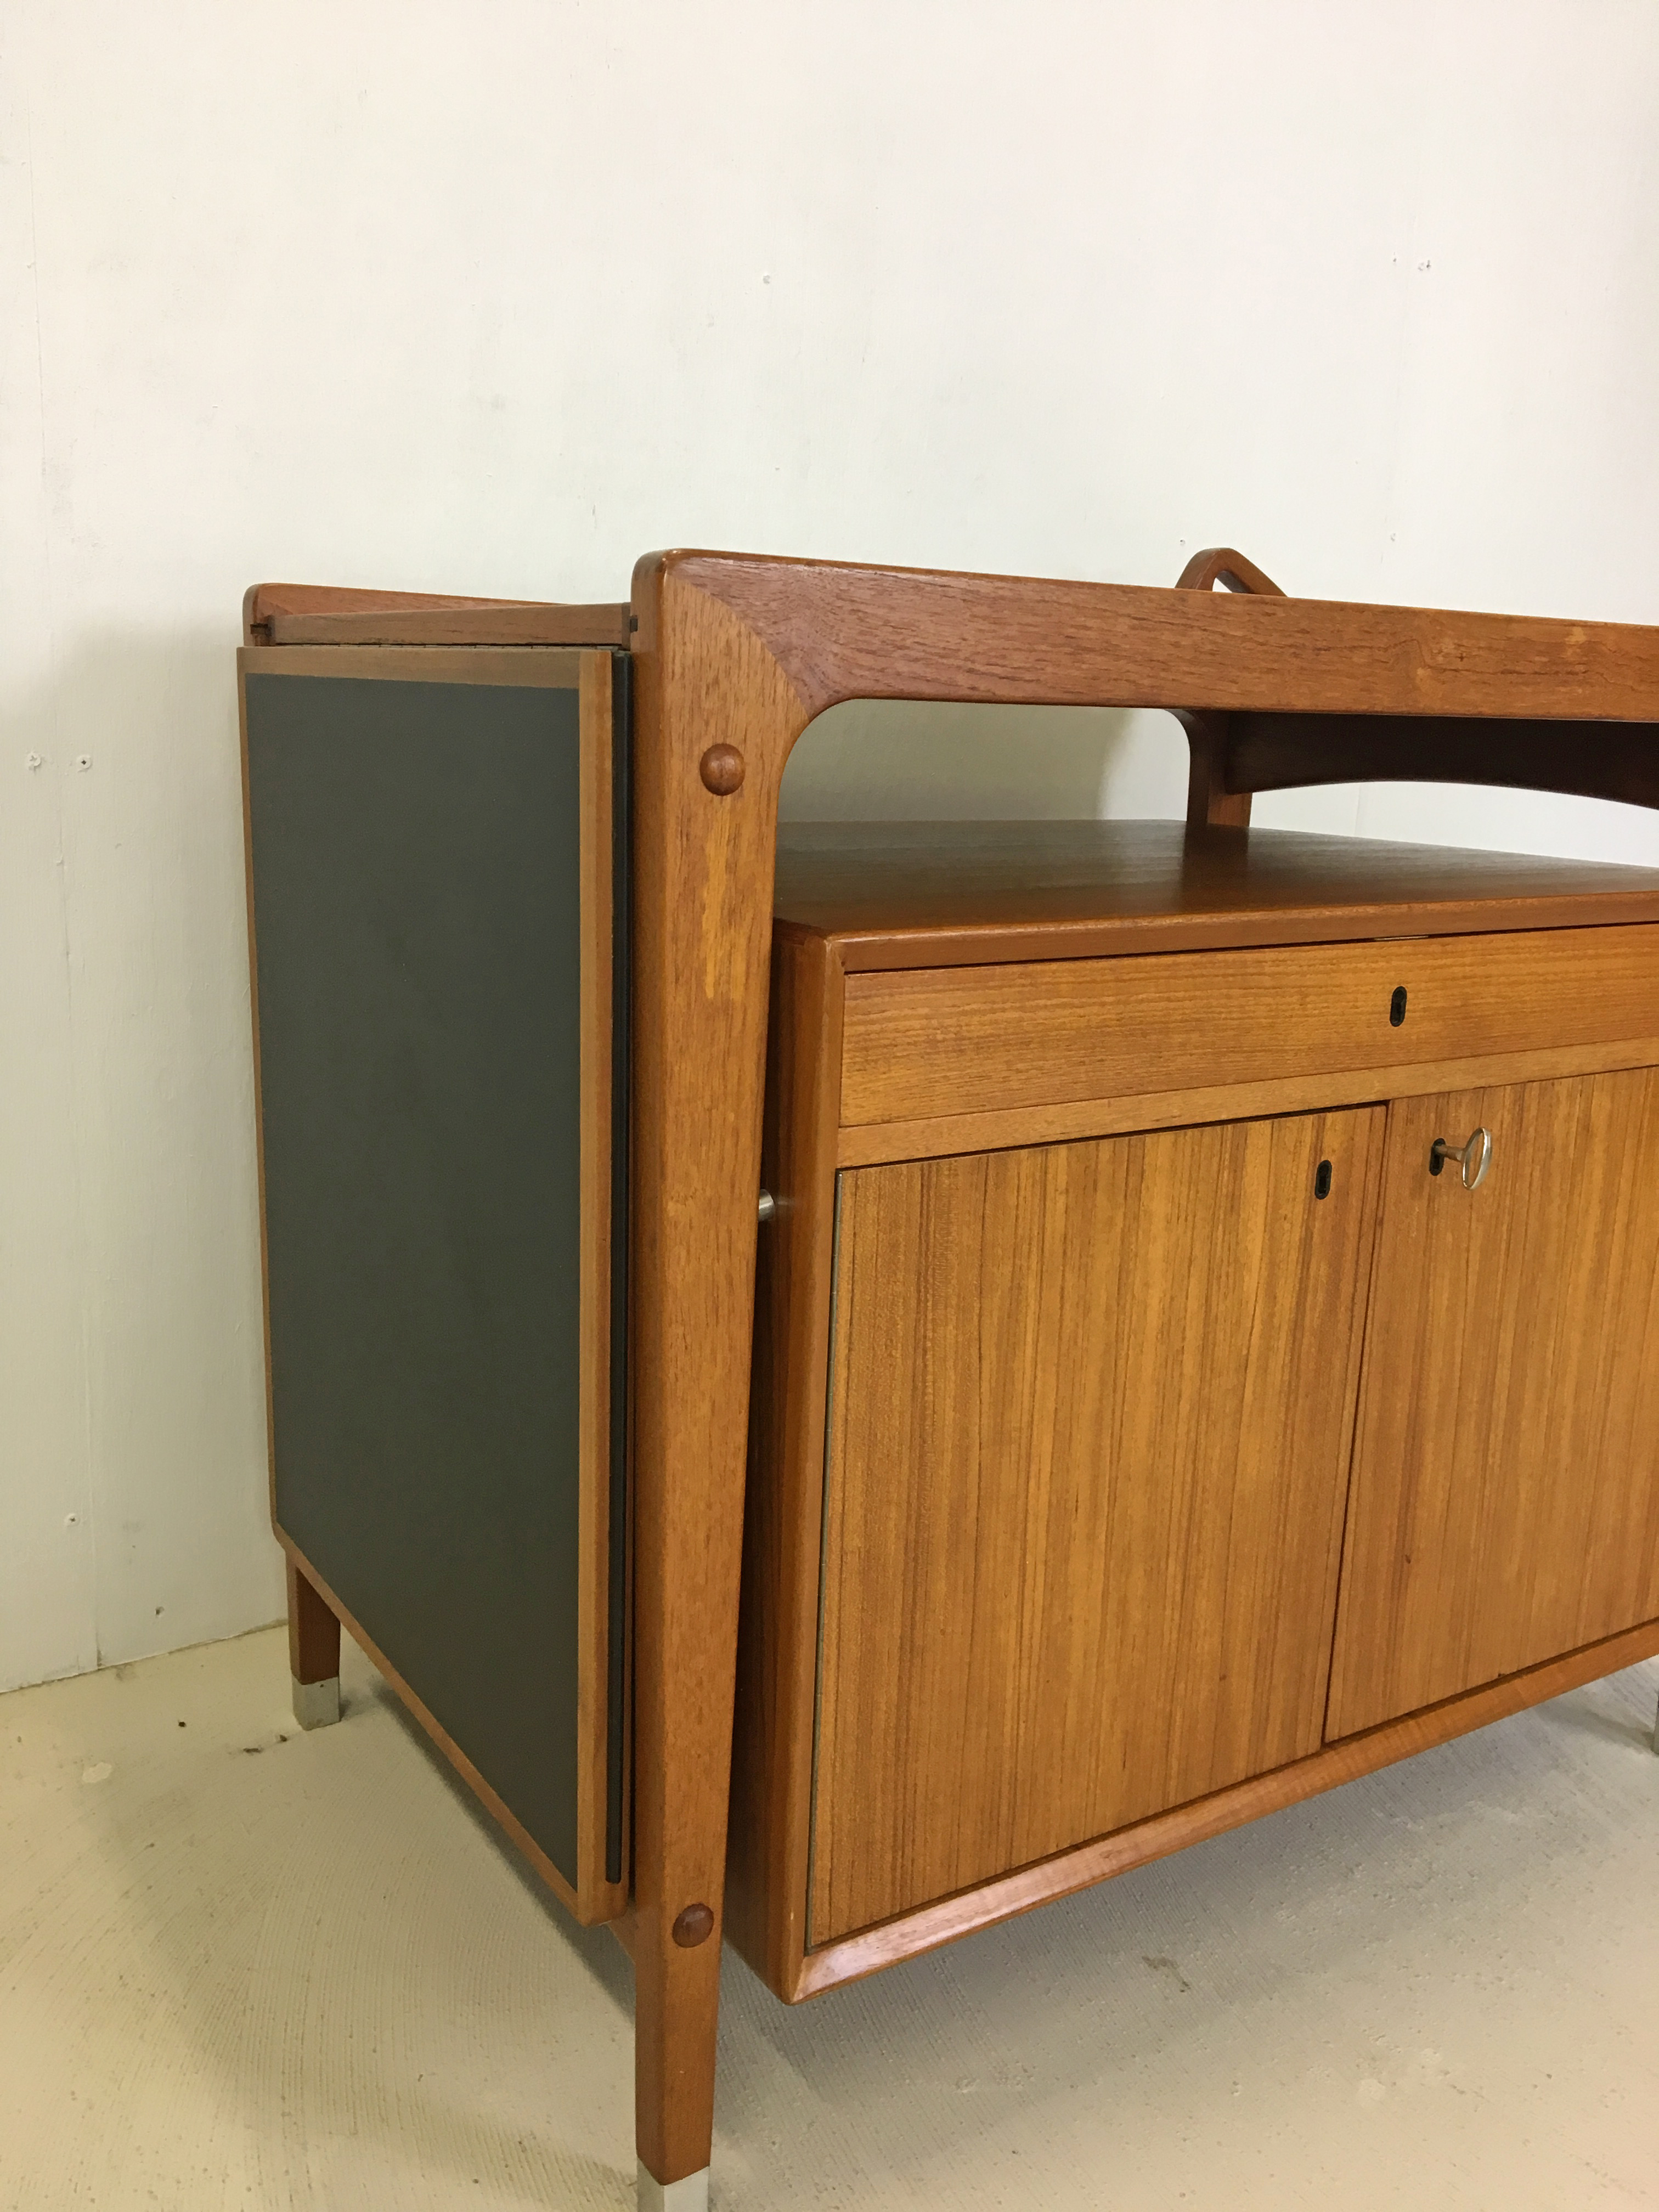 SALE - Teak Rolling Bar Cart by Dyrlund